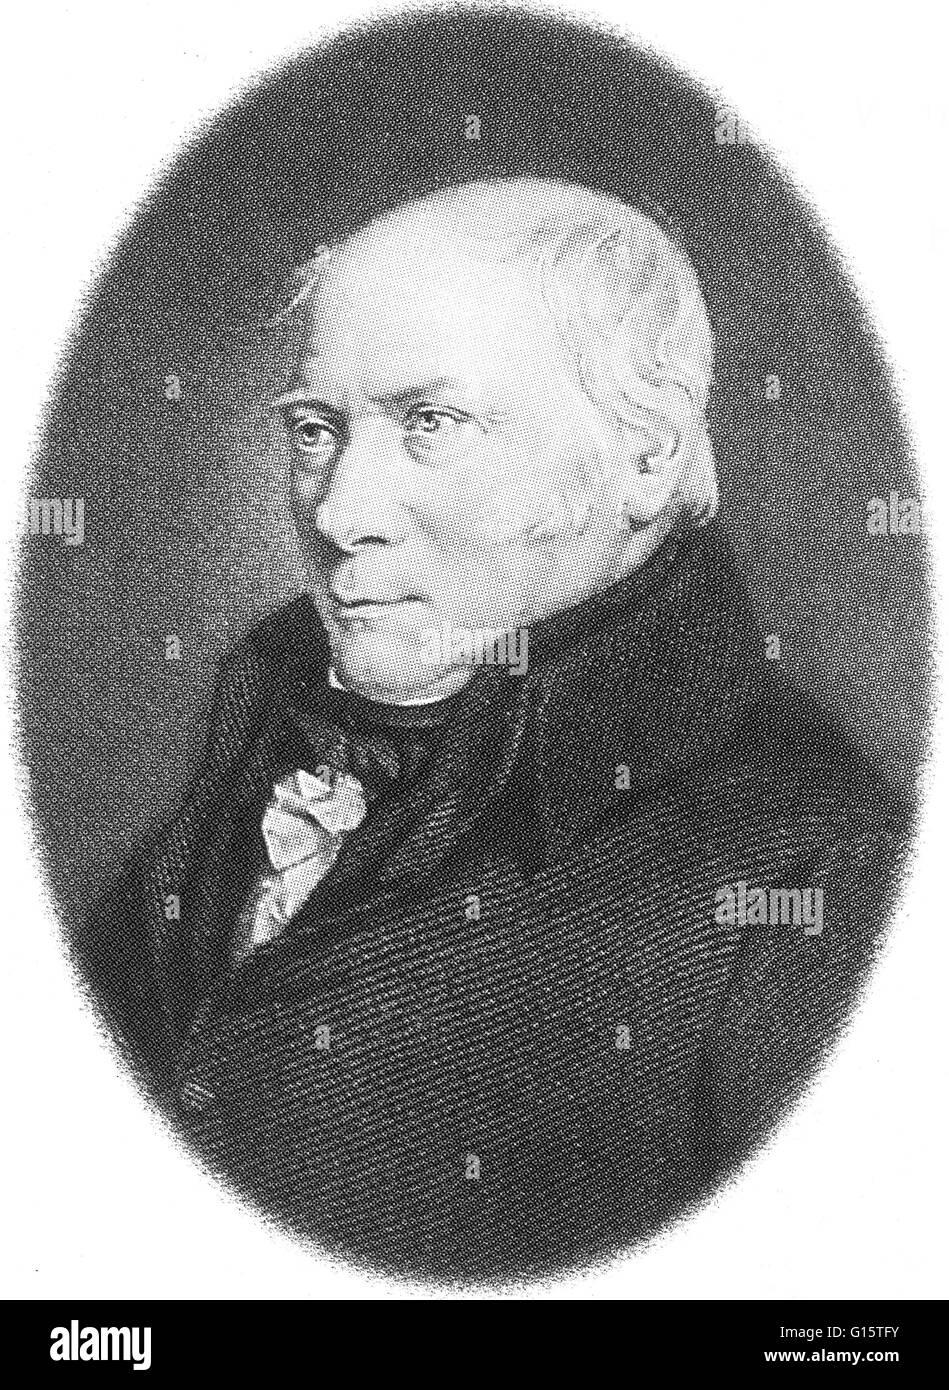 William 'Strata' Smith (March 34, 1769 - August 28, 1839) was an English geologist, credited with creating - Stock Image